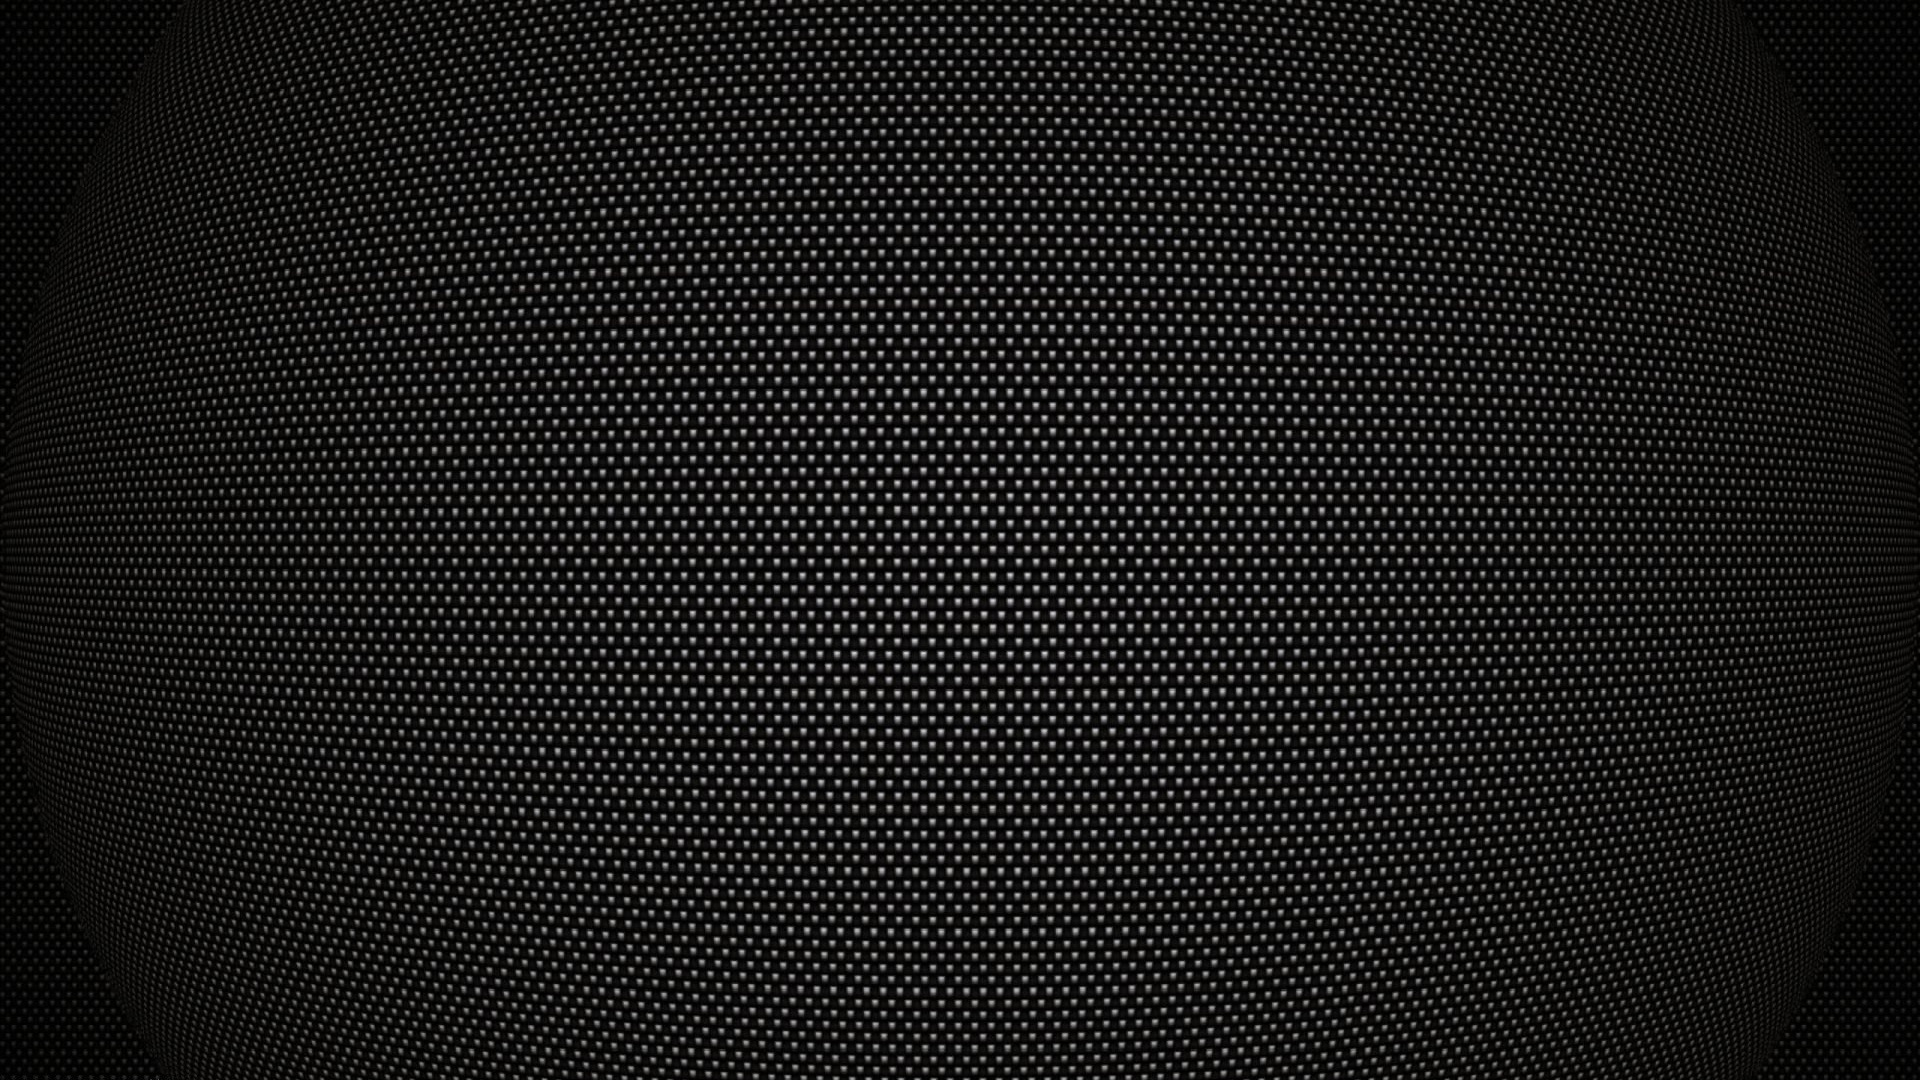 Plain Black Wallpaper 2 Hd Wallpaper - Hdblackwallpaper.com